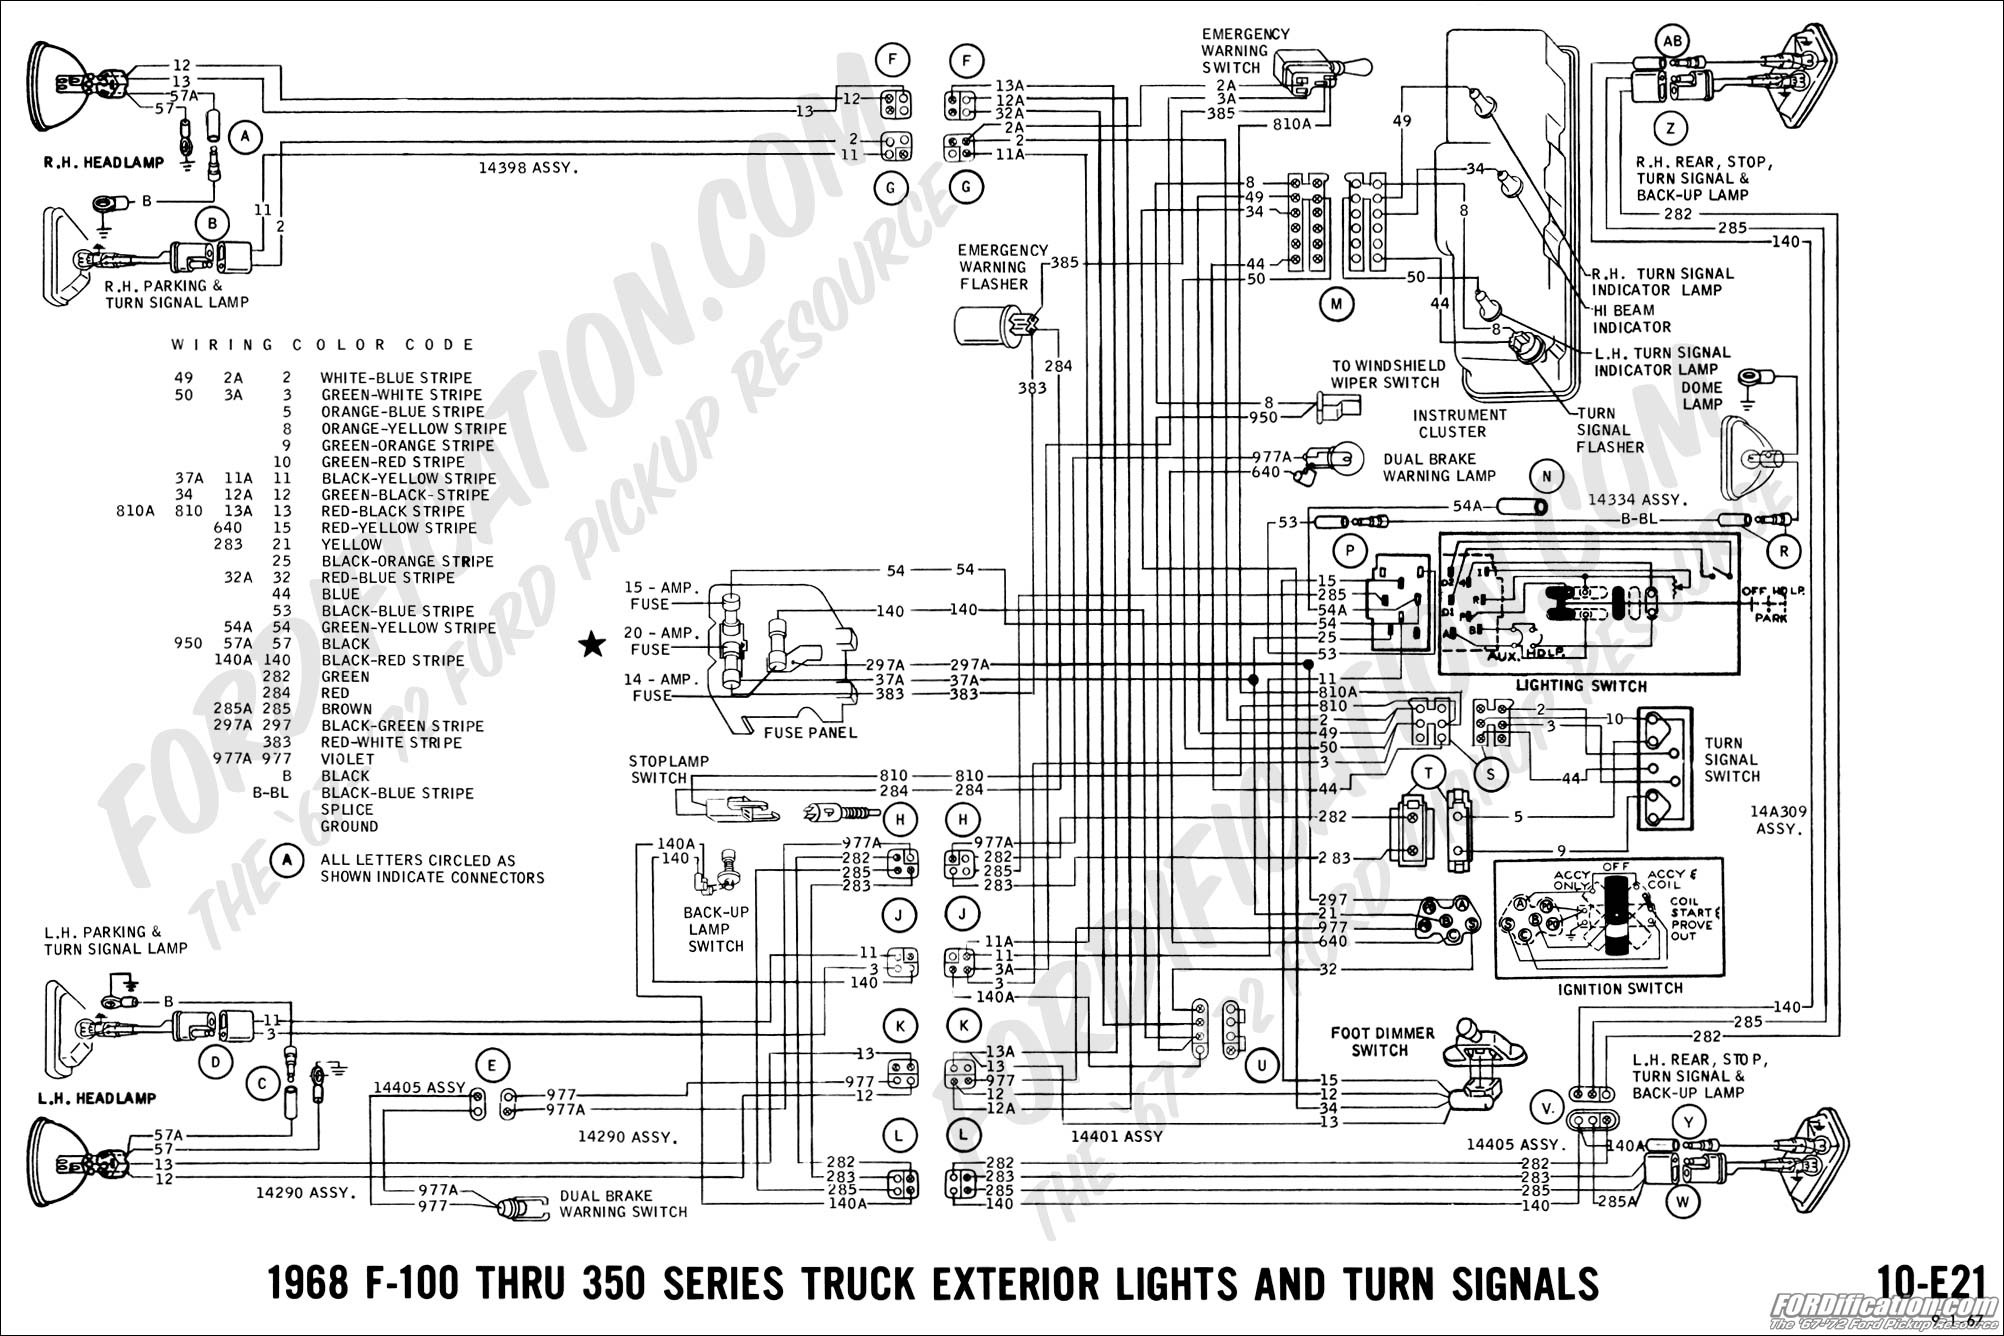 1999 ford 550 Tailight Diagram 688 ford F 350 Tail Light Wiring Diagram Of 1999 ford 550 Tailight Diagram